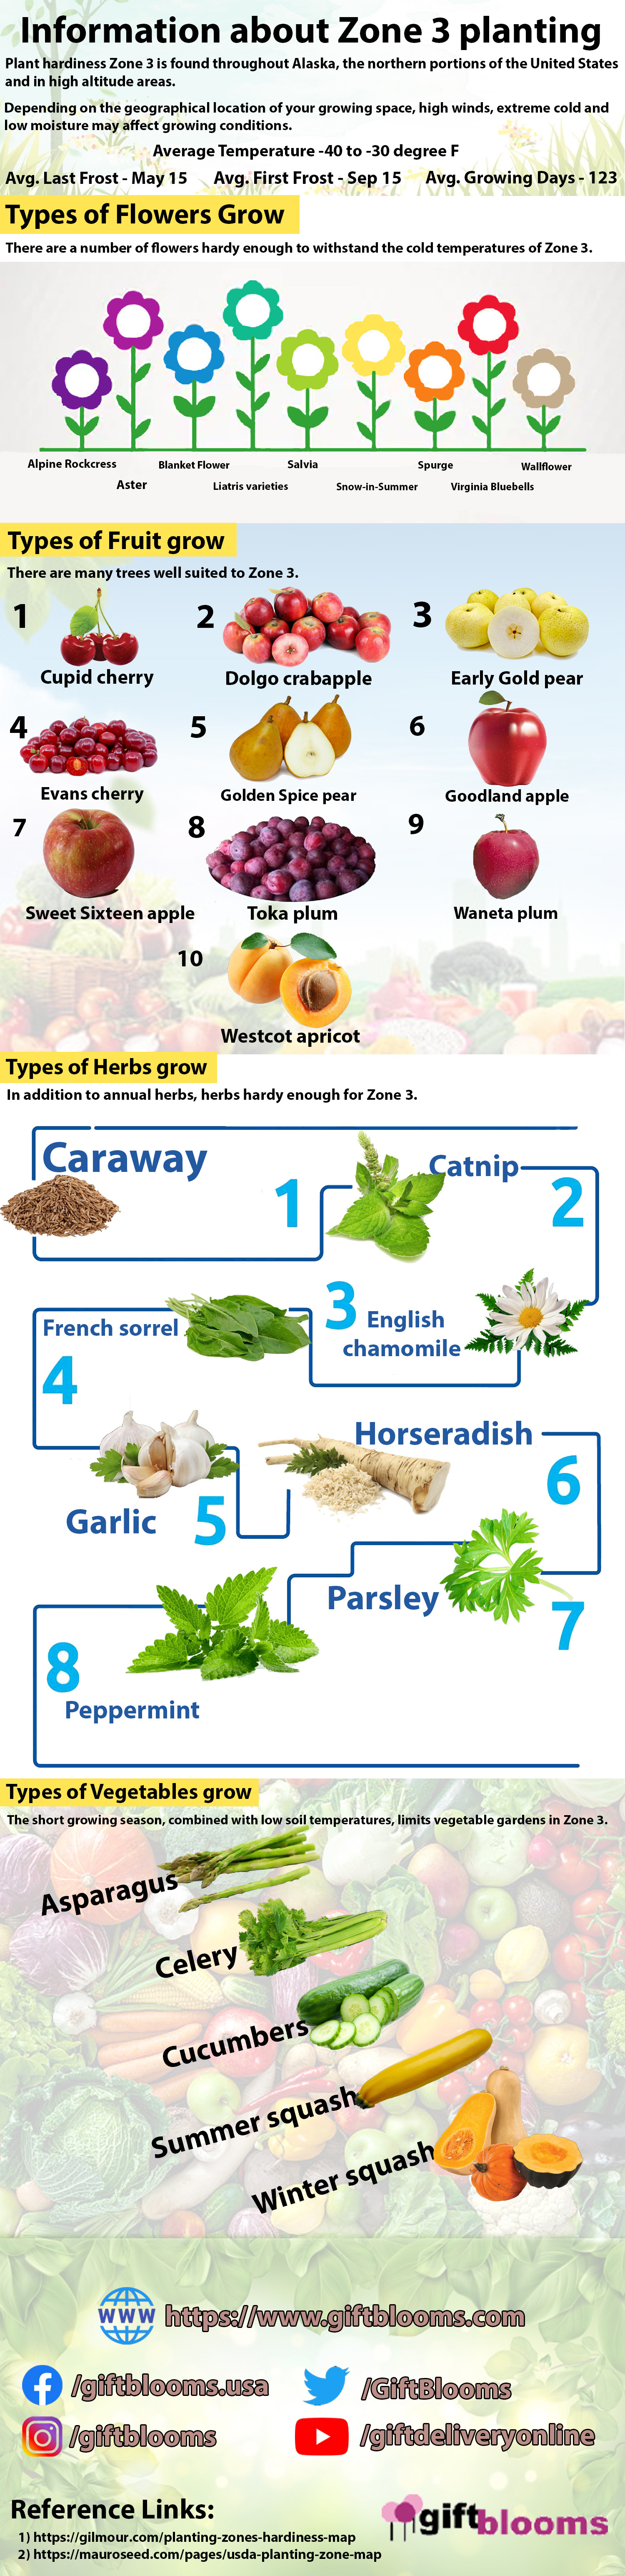 Information about Zone 3 planting Infographic